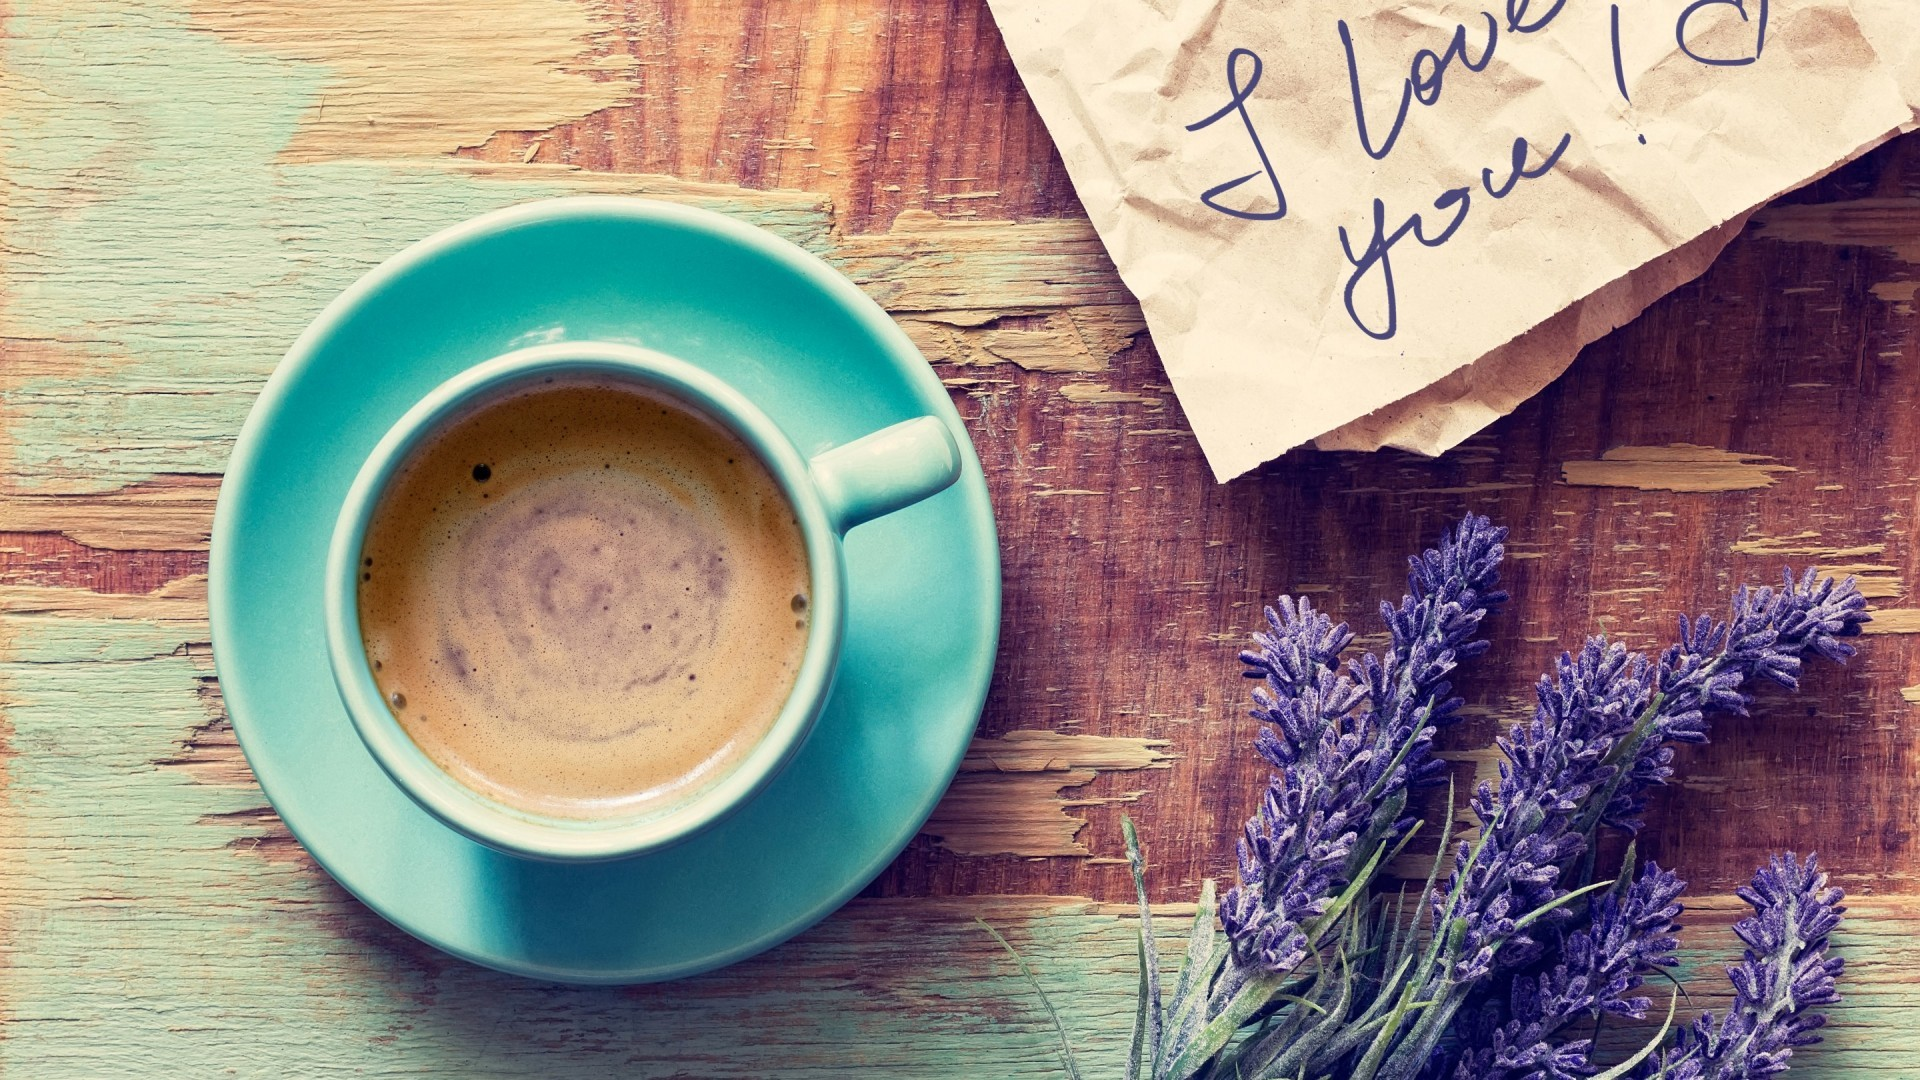 Coffee wallpaper download free awesome full hd - Cute coffee wallpaper ...